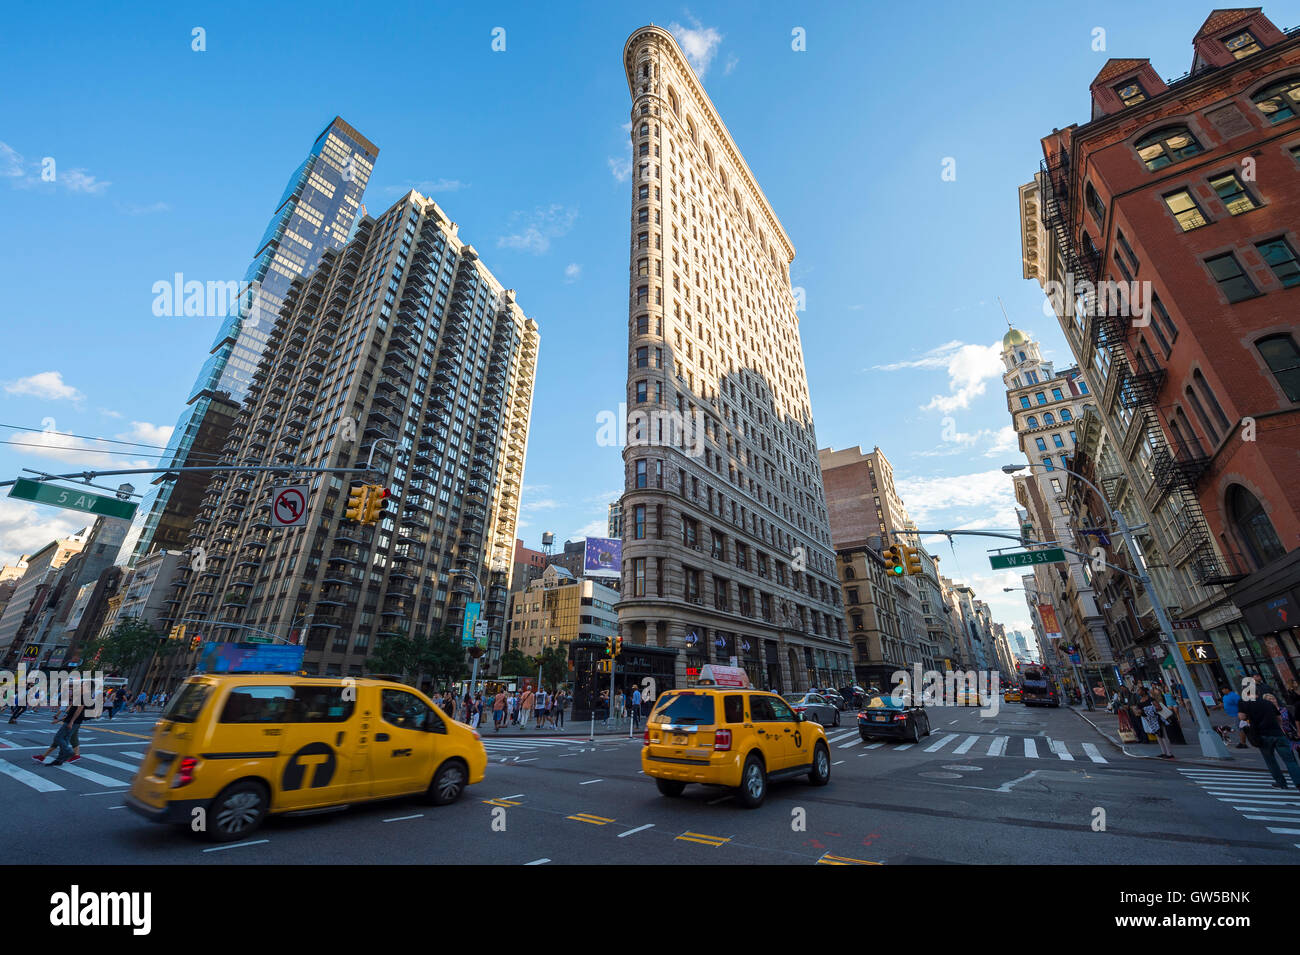 NEW YORK CITY - SEPTEMBER 4, 2016: Yellow taxis head downtown on Broadway past the iconic Flatiron Building. - Stock Image